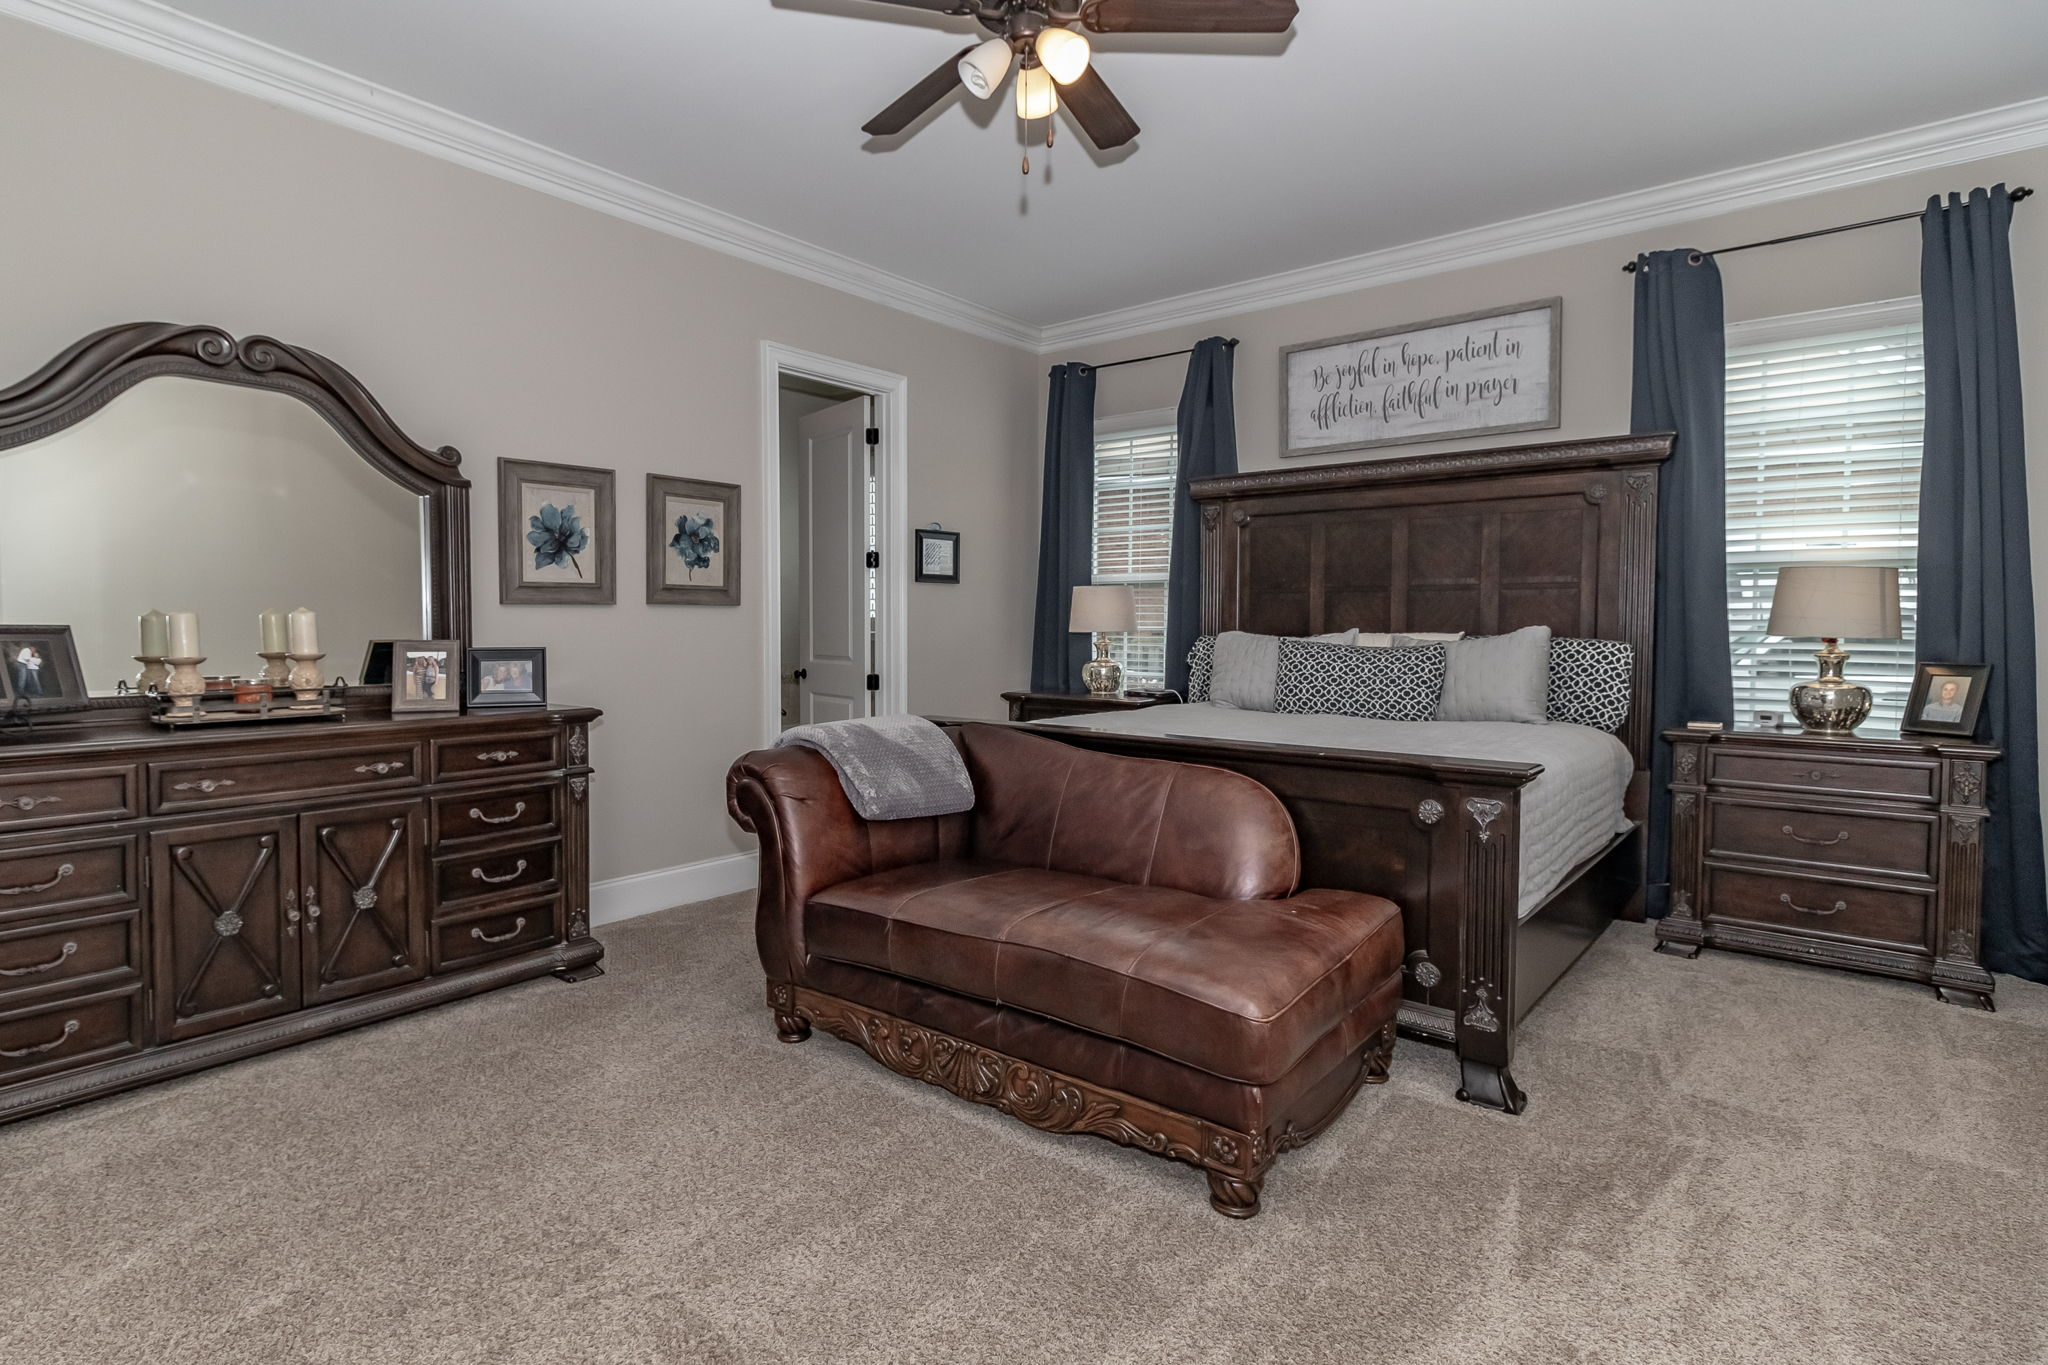 Owner's Suite On Main